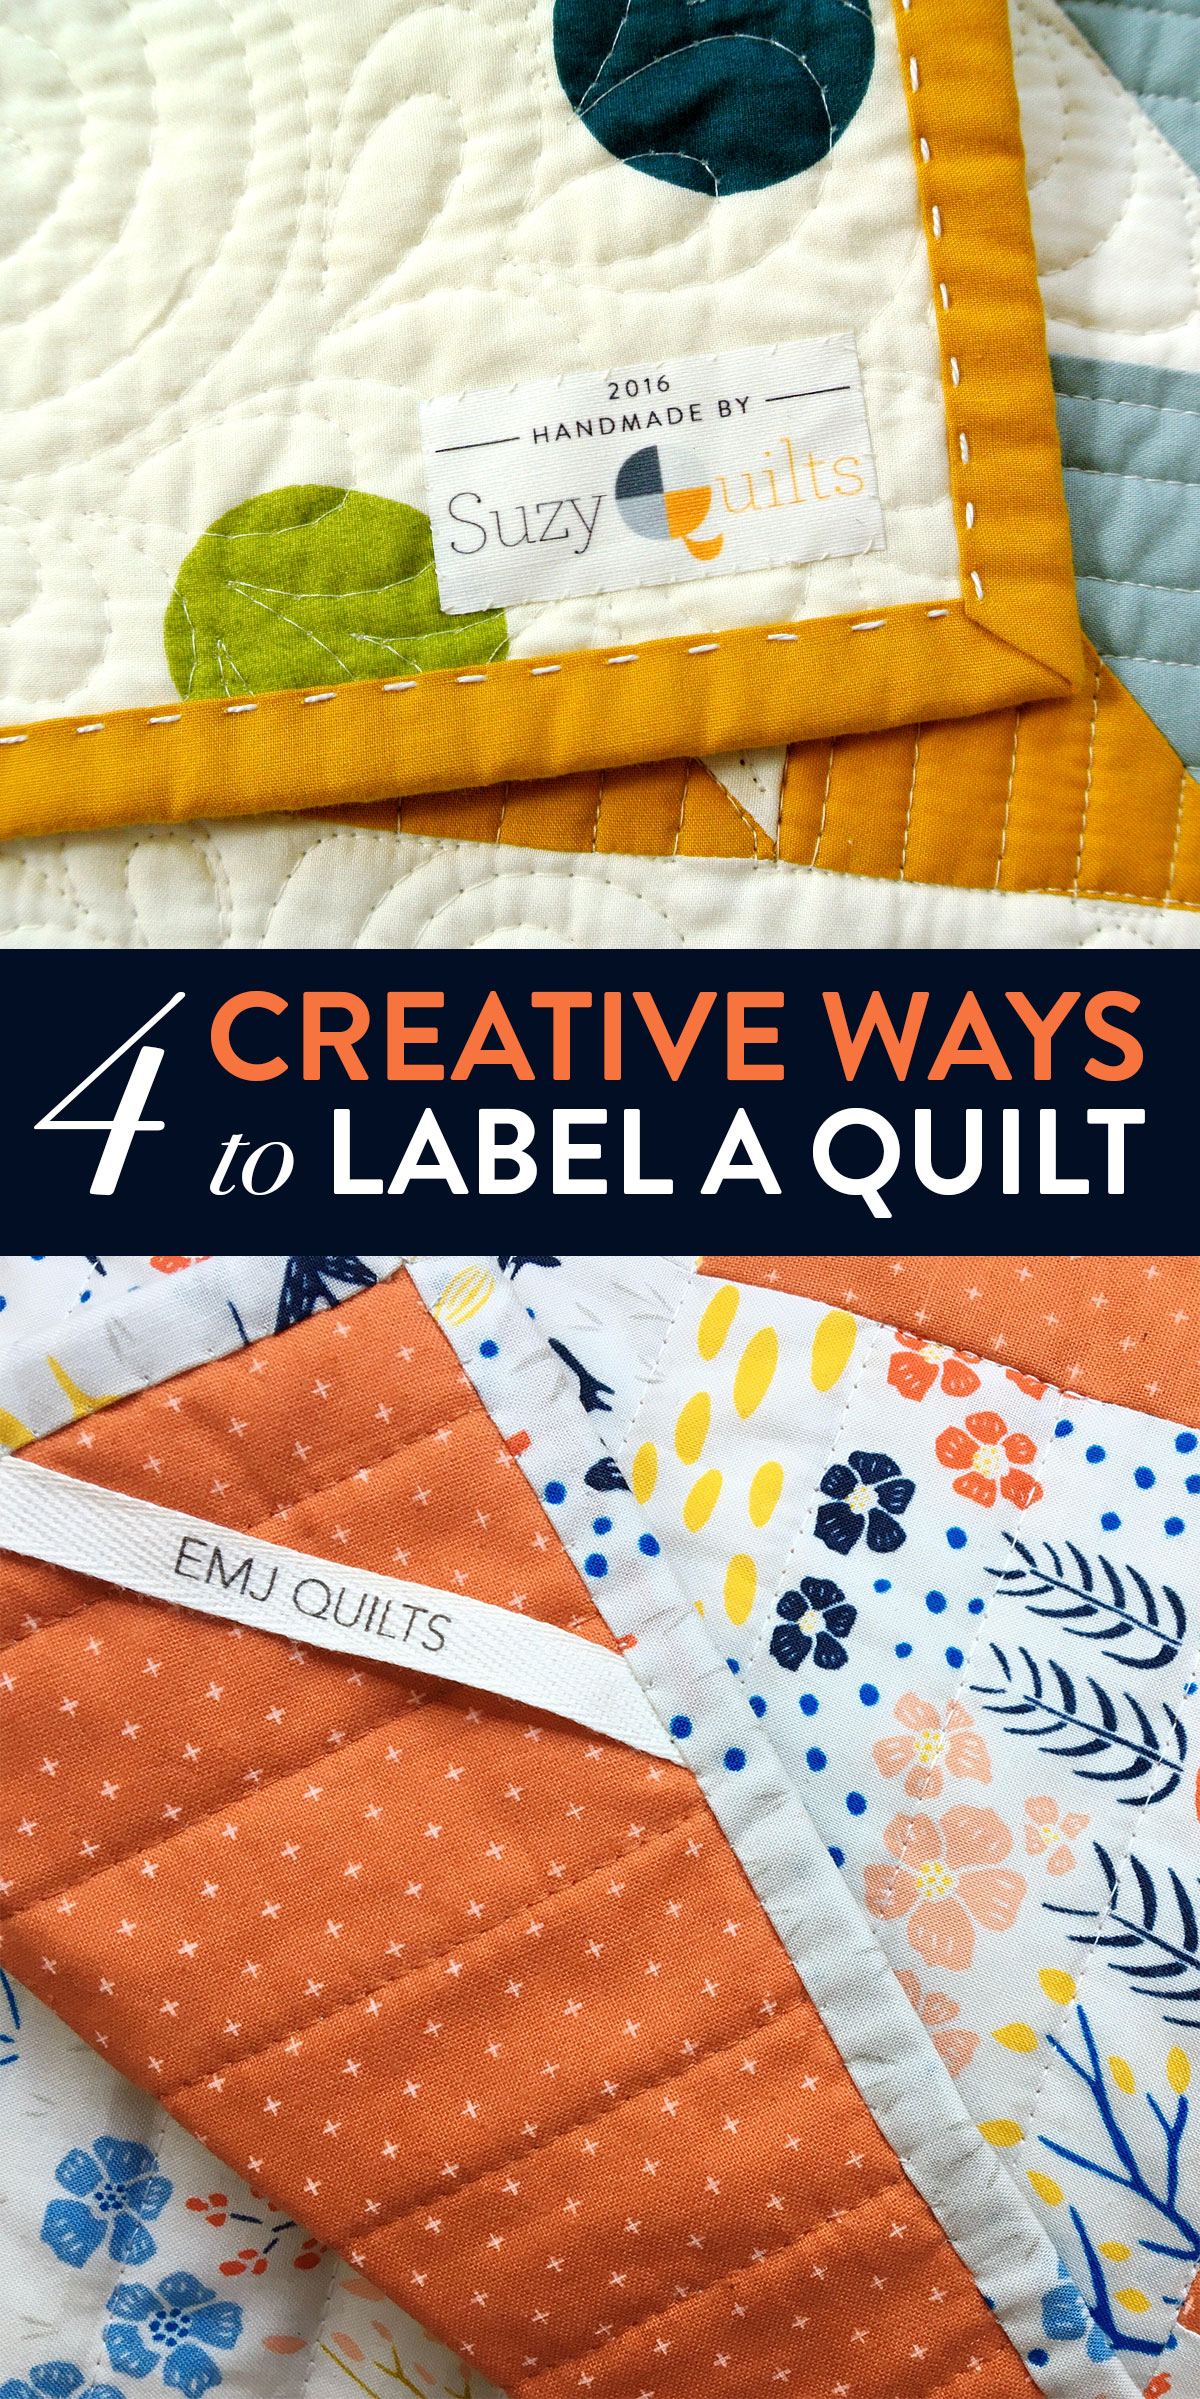 4-Creative-Ways-Label-Quilt